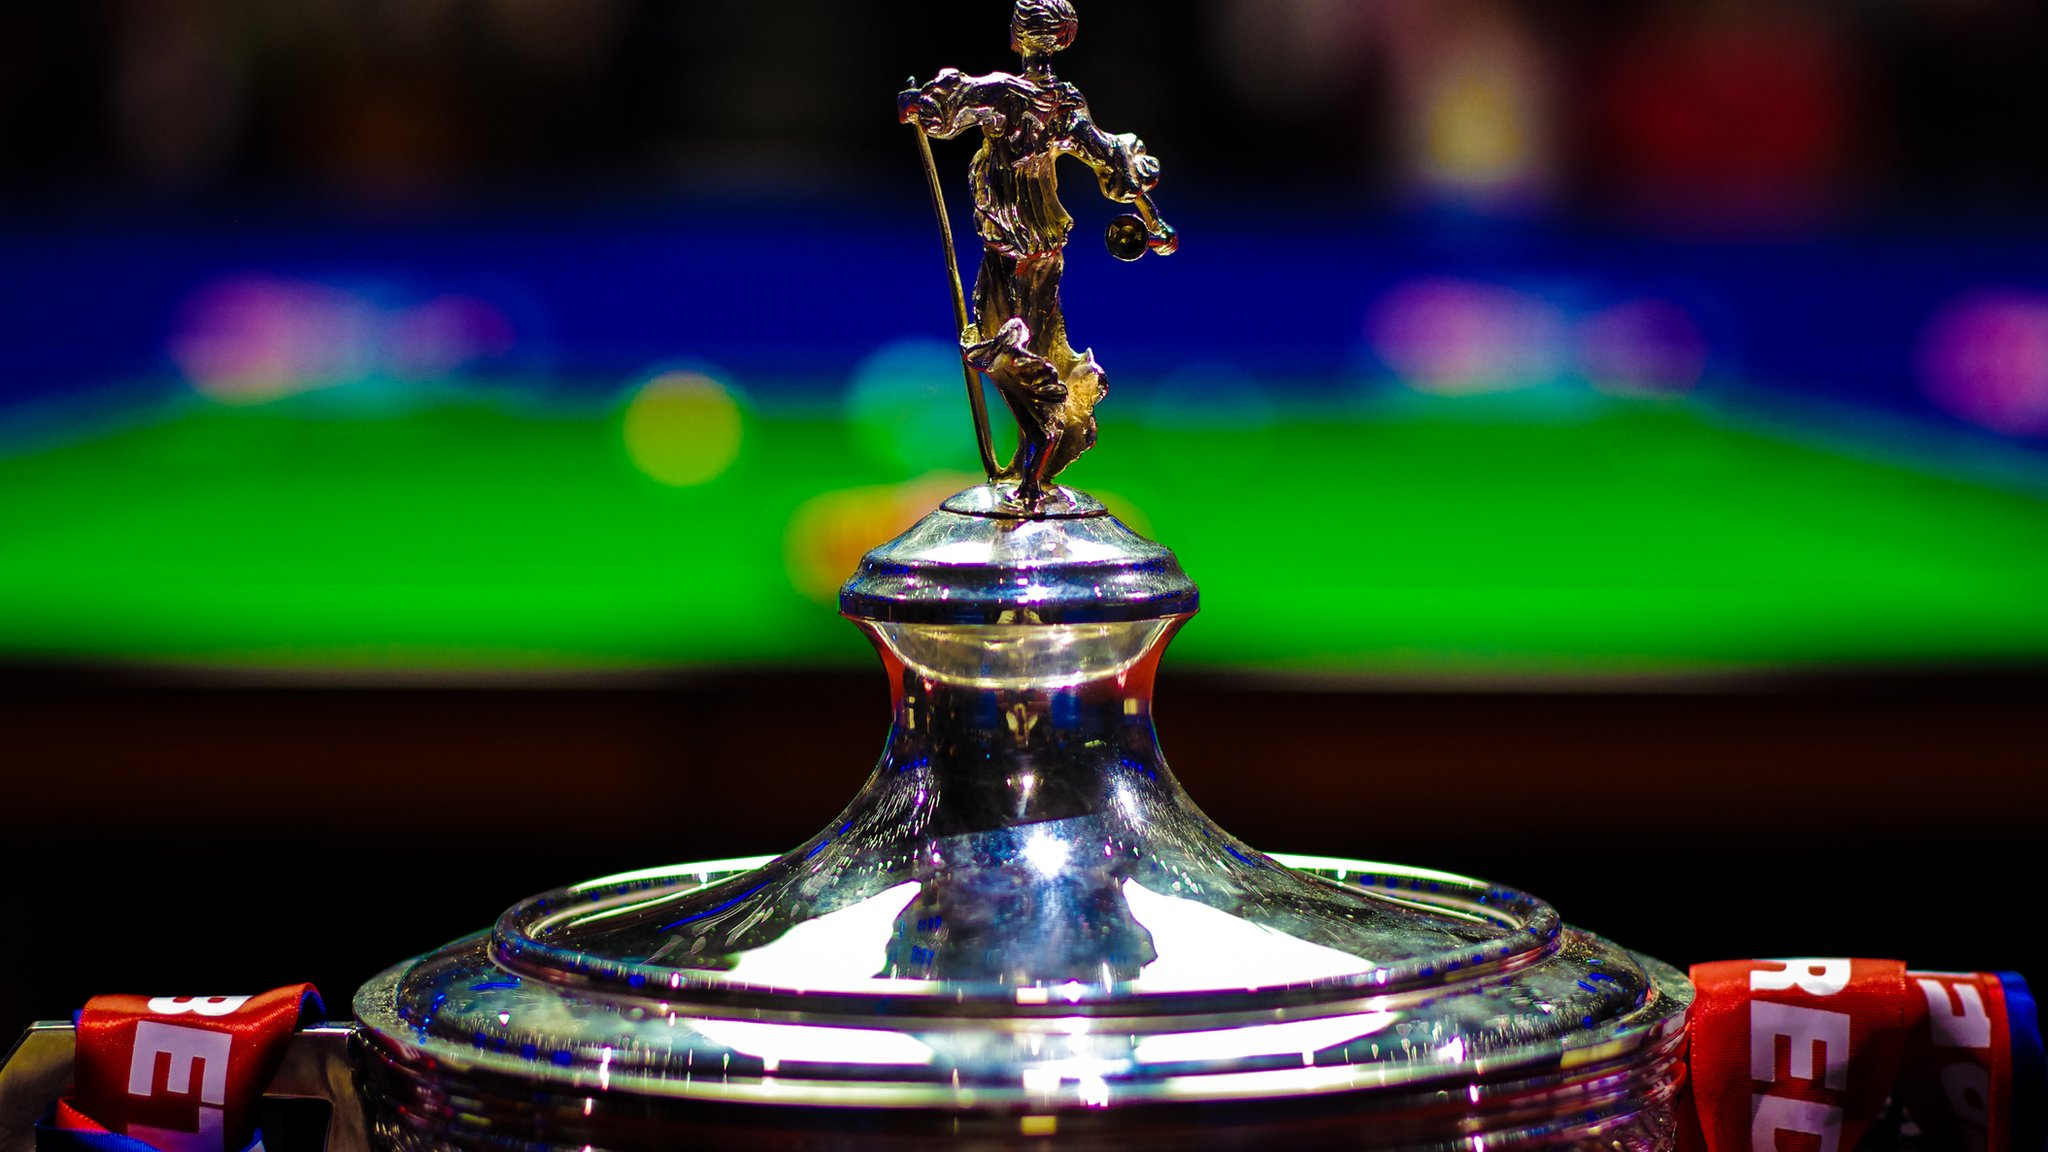 World Snooker Championship 2019: Scores updates, schedule and results